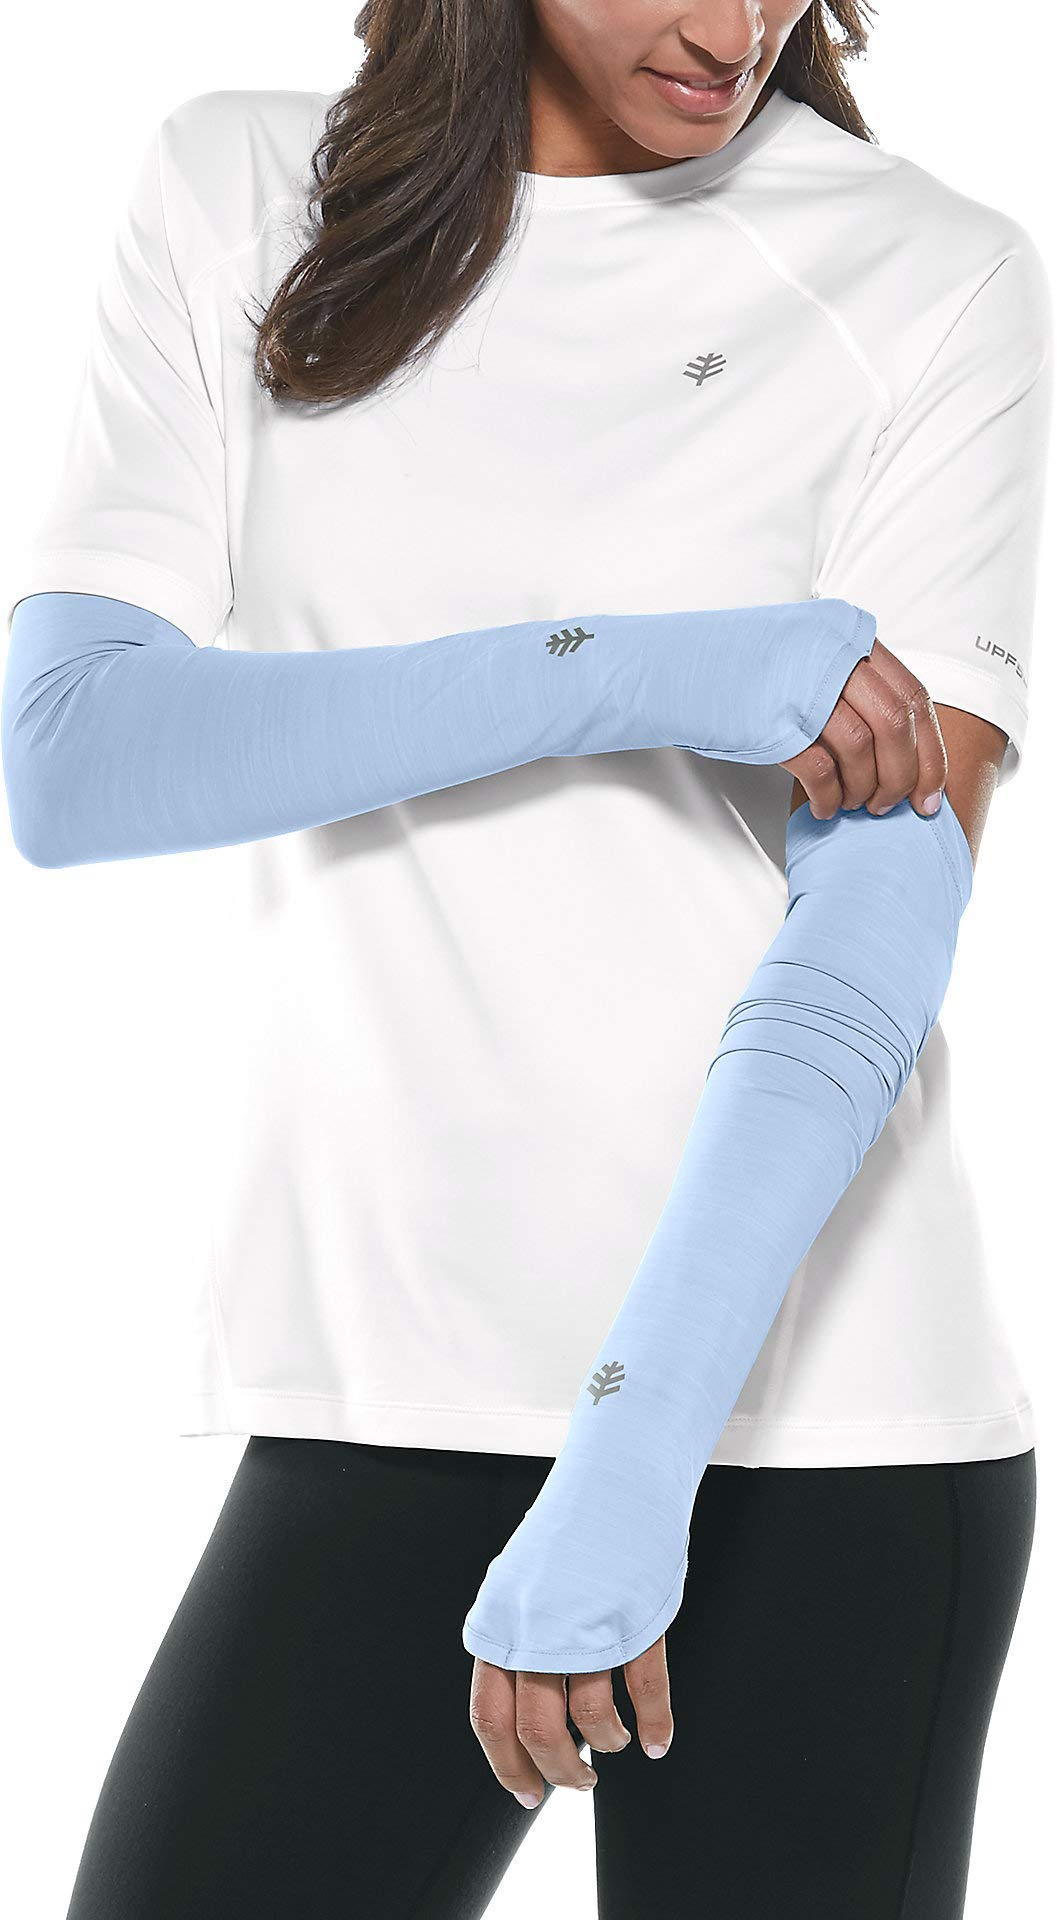 Coolibar UPF 50+ Women's Performance Sleeves - Sun Protective (X-Small- Vintage Blue)